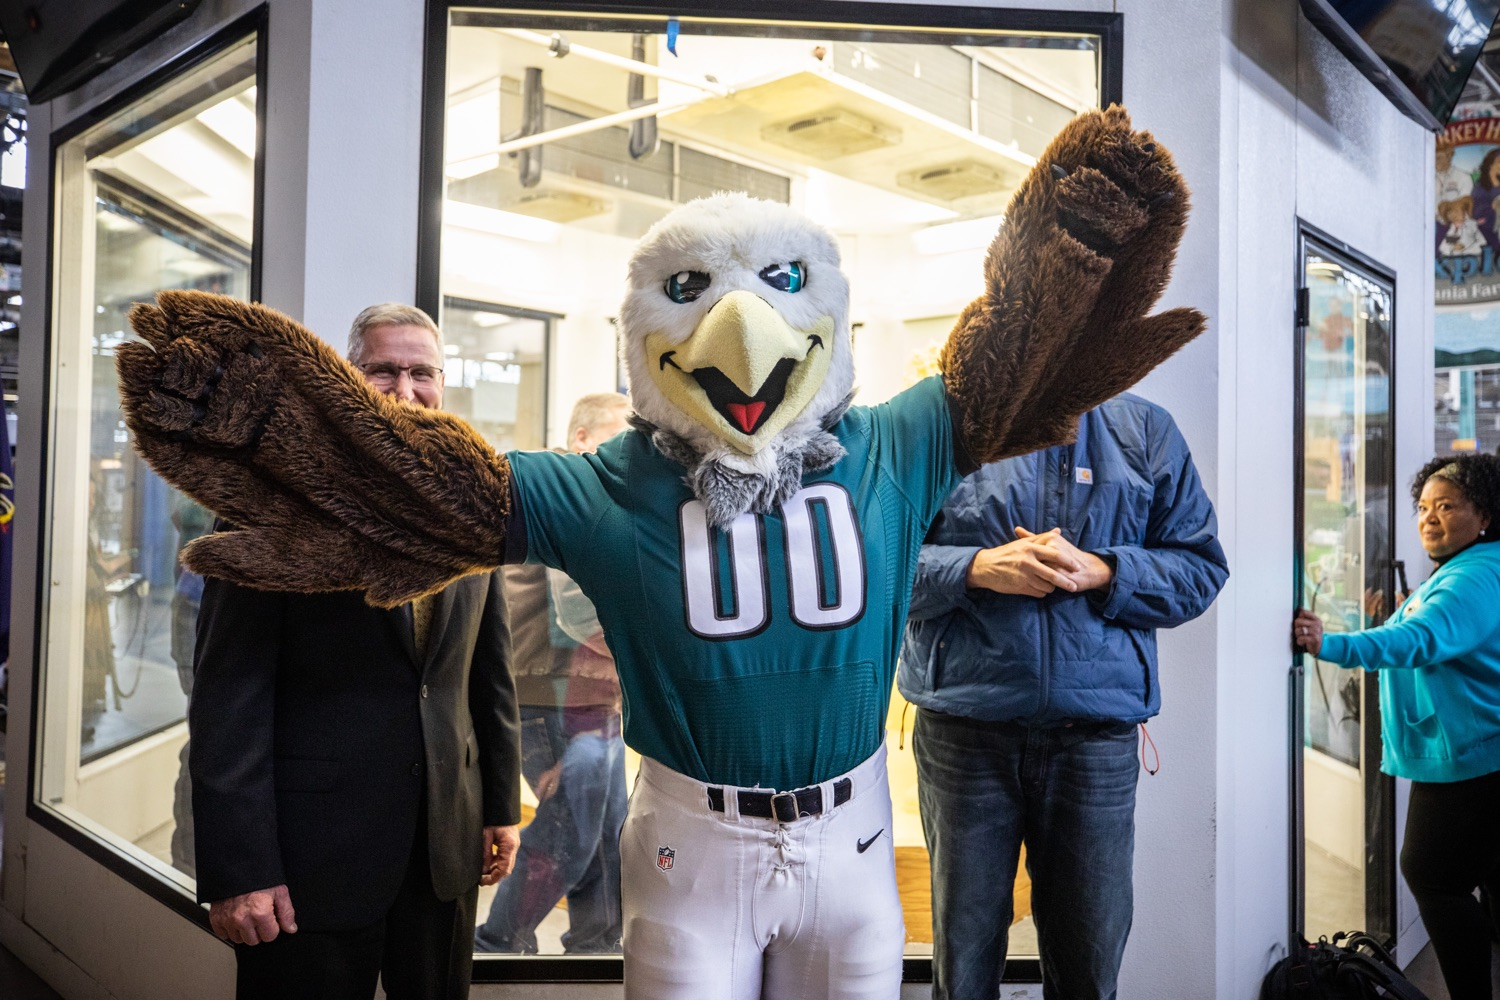 "<a href=""https://filesource.wostreaming.net/commonwealthofpa/photo/17646_agric_butter_sculpture_dz_021.jpg"" target=""_blank"">⇣ Download Photo<br></a>Philadelphia Eagles Swoop, Lt. Governor John Fetterman,  and Secretary of Agriculture Russell Redding at the Pennsylvania Farm Show butter sculpture.  Lt. Governor John Fetterman and Secretary of Agriculture Russell Redding today unveiled the 2020 Pennsylvania Farm Show butter sculpture, carved from a half-ton of butter depicting three of Pennsylvanias beloved professional sports mascots: Philadelphia Flyers Gritty, Philadelphia Eagles Swoop, and Pittsburgh Steelers Steely McBeam celebrating with a spread of Pennsylvania dairy products. The sculpture, a long-time Farm Show staple, encourages Pennsylvanians to be a fan of Pennsylvania dairy and give a cheer to the more than 6,200 dairy farmers in the commonwealth.  Harrisburg, PA  January 2, 2020"